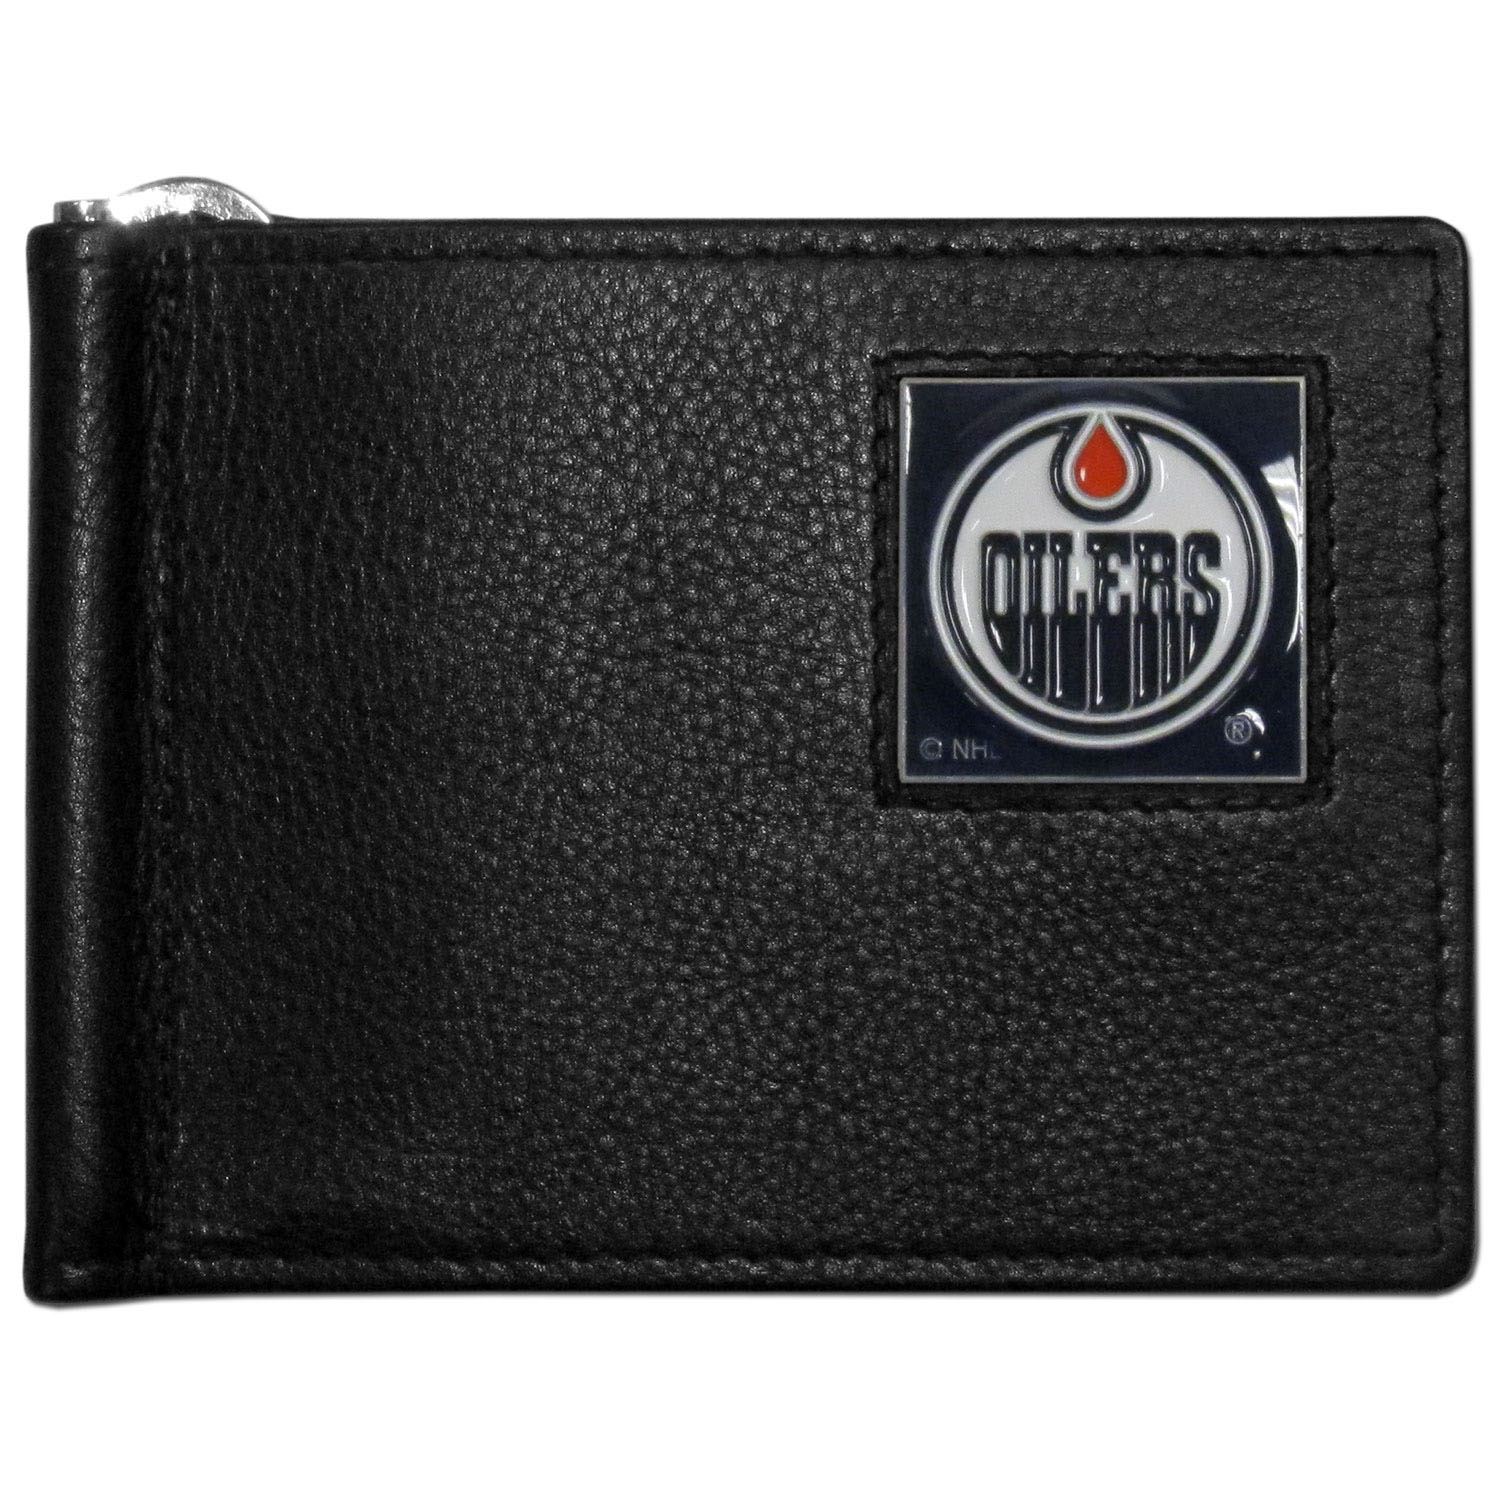 Edmonton Oilers® Leather Bill Clip Wallet - This cool new style wallet features an inner, metal bill clip that lips up for easy access. The super slim wallet holds tons of stuff with ample pockets, credit card slots & windowed ID slot. The wallet is made of genuine fine grain leather and it finished with a metal Edmonton Oilers® emblem. The wallet is shipped in gift box packaging.